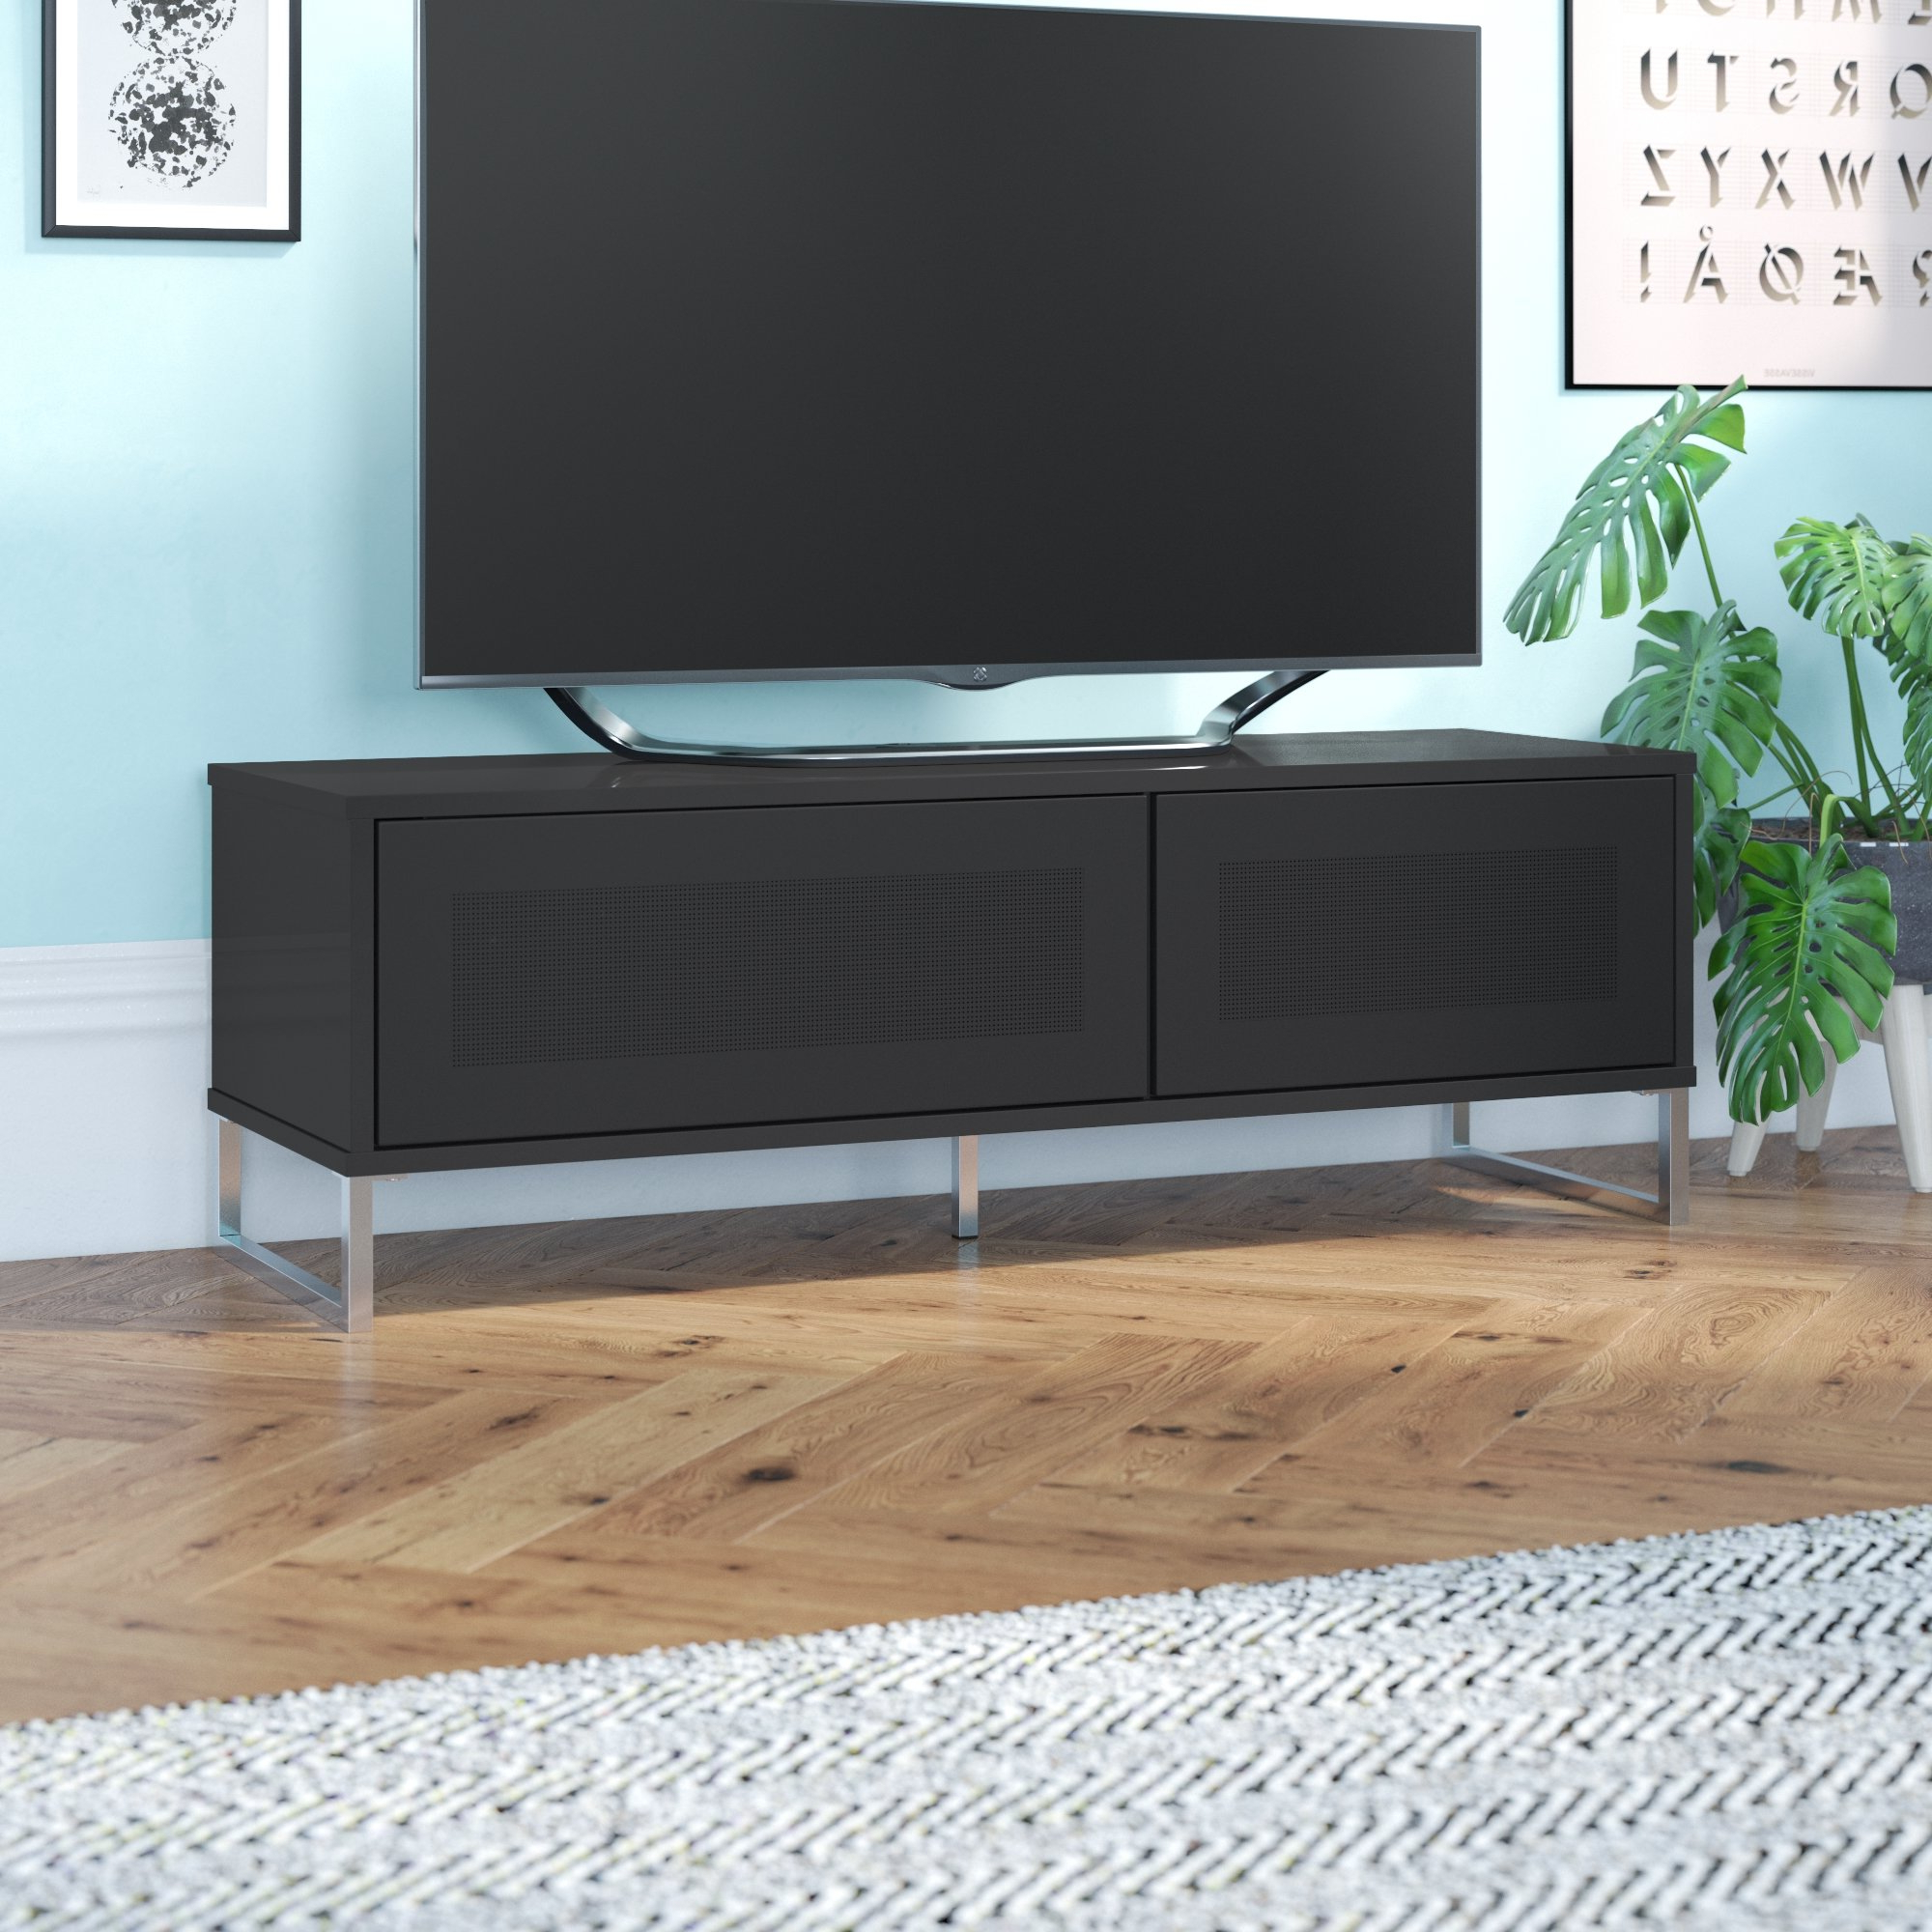 Glass Tv Cabinets With Doors Regarding Popular Tv Cabinet With Glass Doors (View 6 of 20)